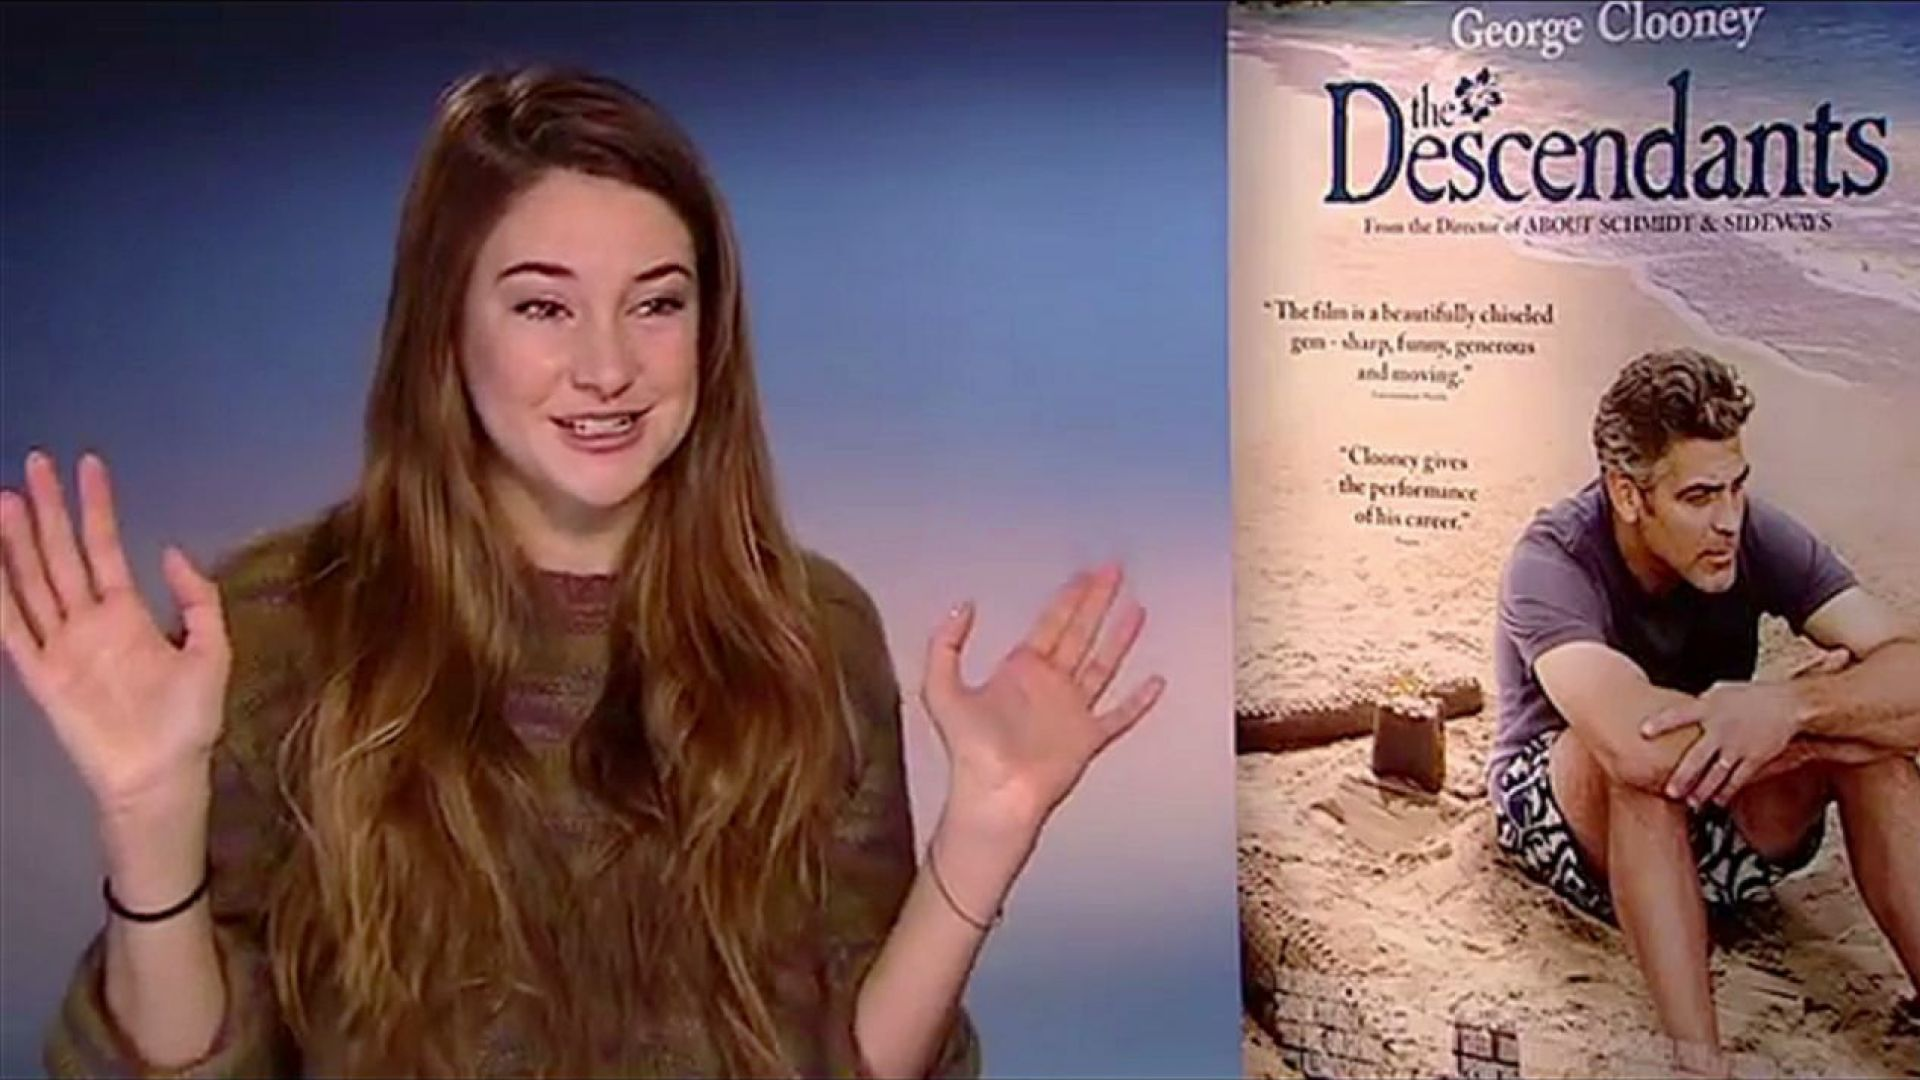 Alexander Payne, Shailene Woodley and George Clooney talk about the story of The Descendants